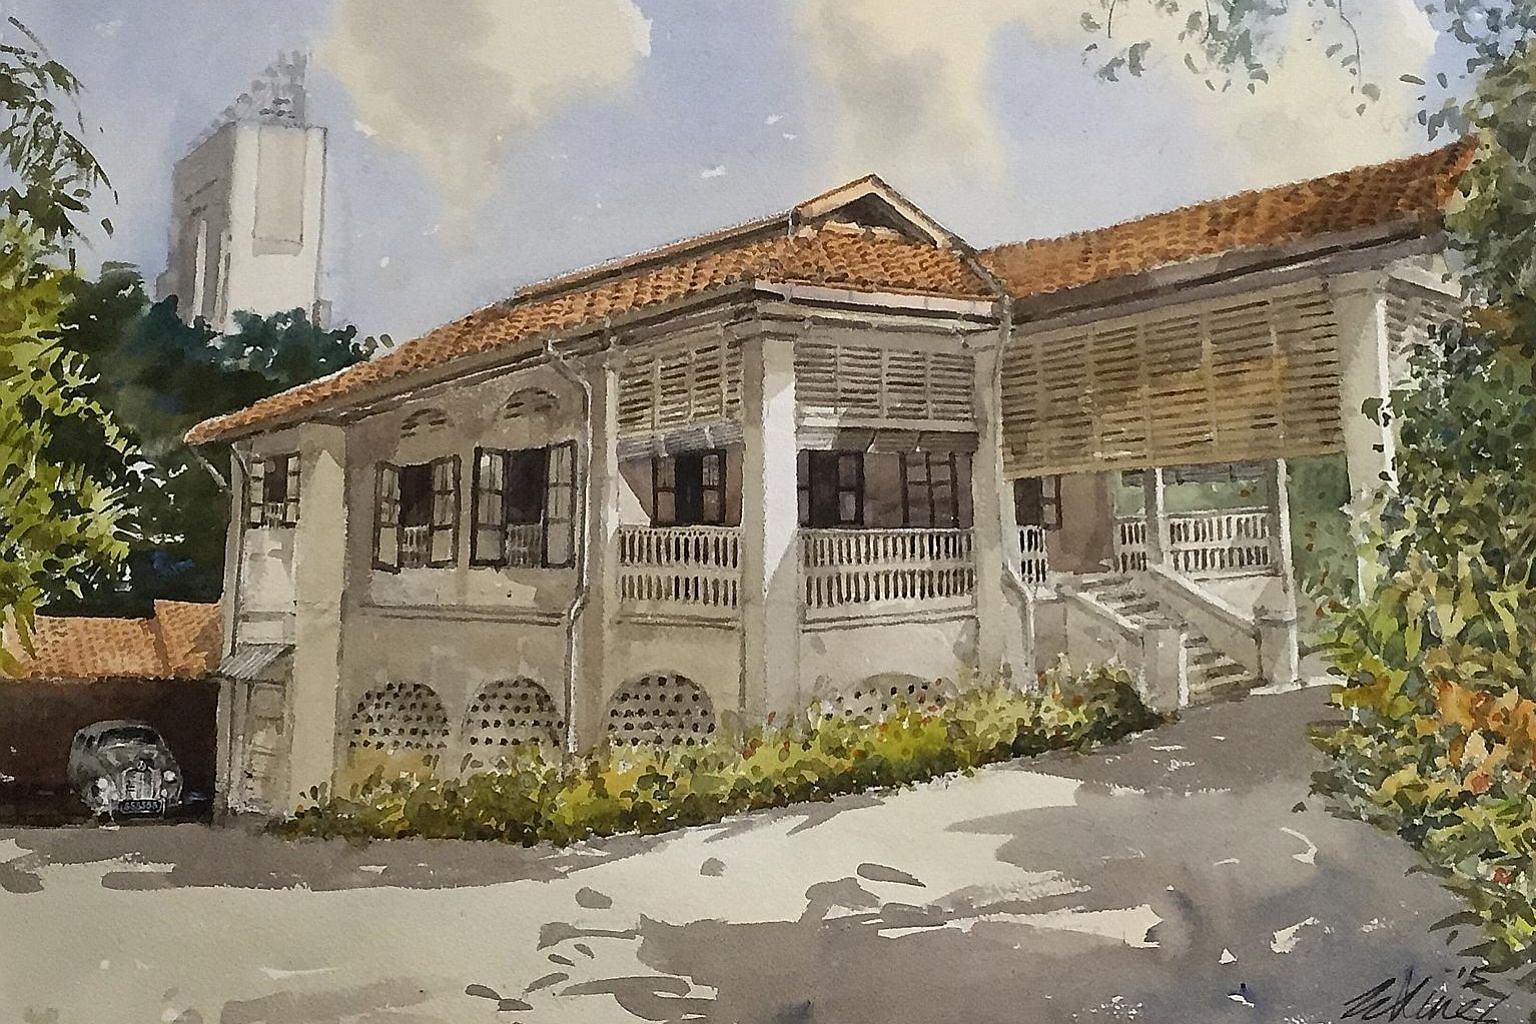 Singapore artist Ong Kim Seng's painting of the house at 38, Oxley Road, featuring it in its original condition in the 1950s. Founding Prime Minister Lee Kuan Yew's legacy is important, but even more important is how a people move forward, beyond the